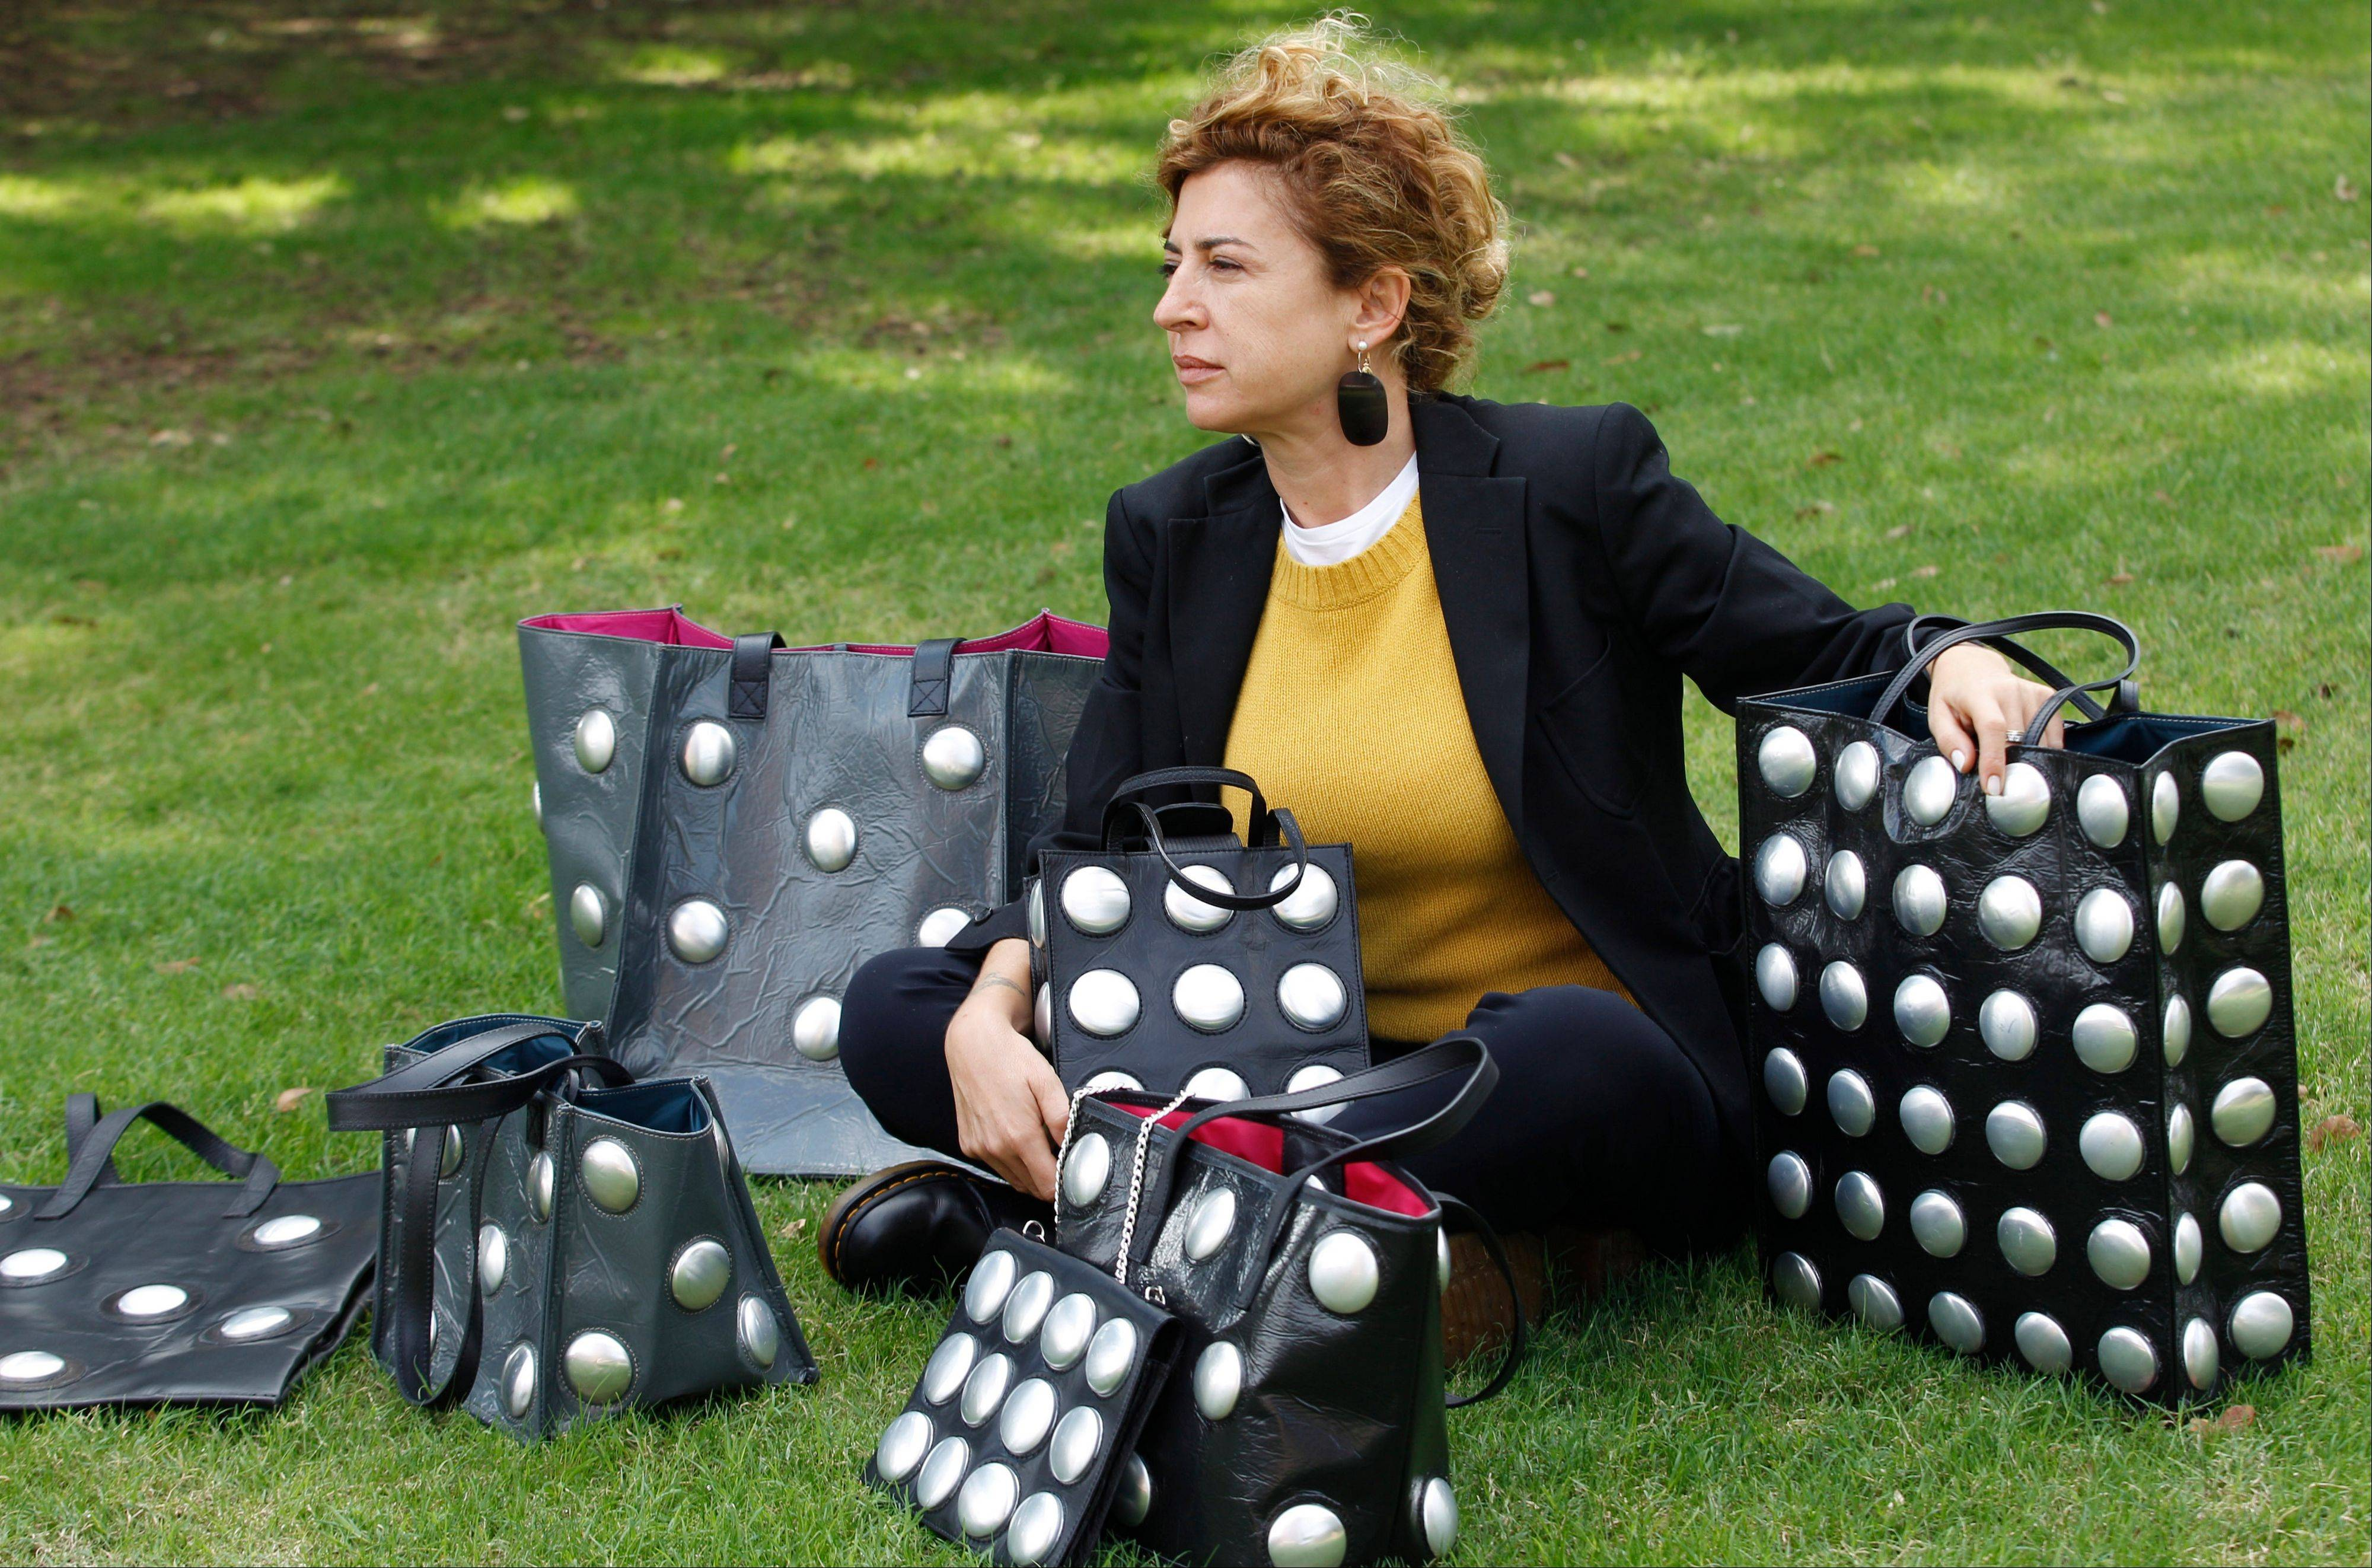 This Oct. 24, 2012 photo shows Ilaria Venturini Fendi, a member of the famous fashion family, posing with bags from her Carmina Campus fashion project that produces bags from repurposed materials in Dallas. The bags shown are made of garbage bags and soda cans.